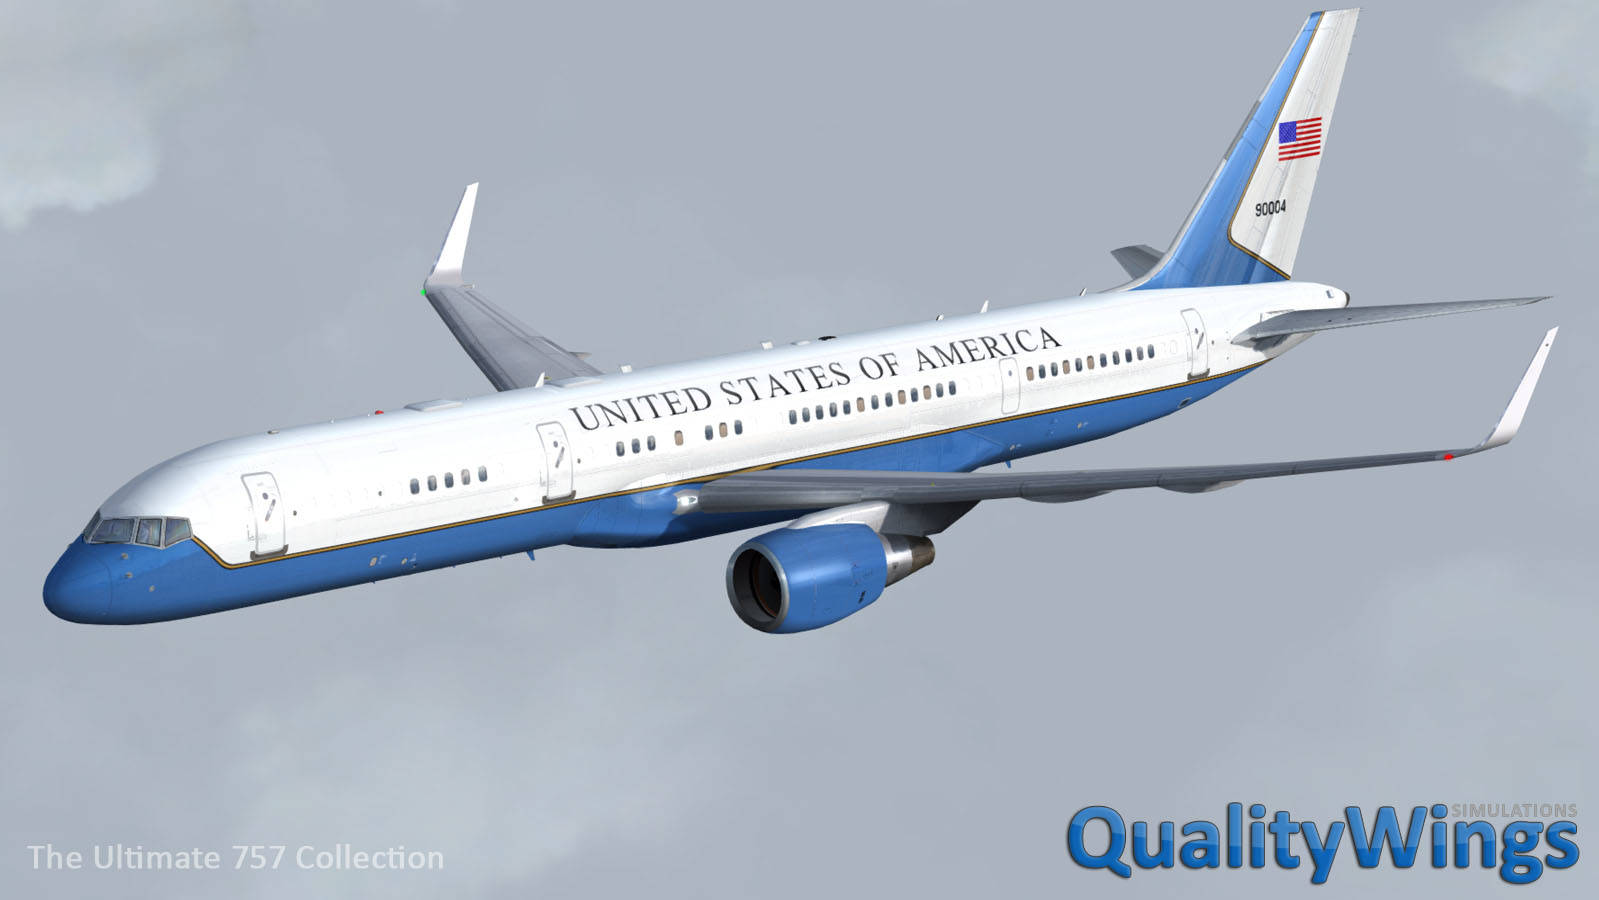 Just Flight - QualityWings - The Ultimate 757 Collection